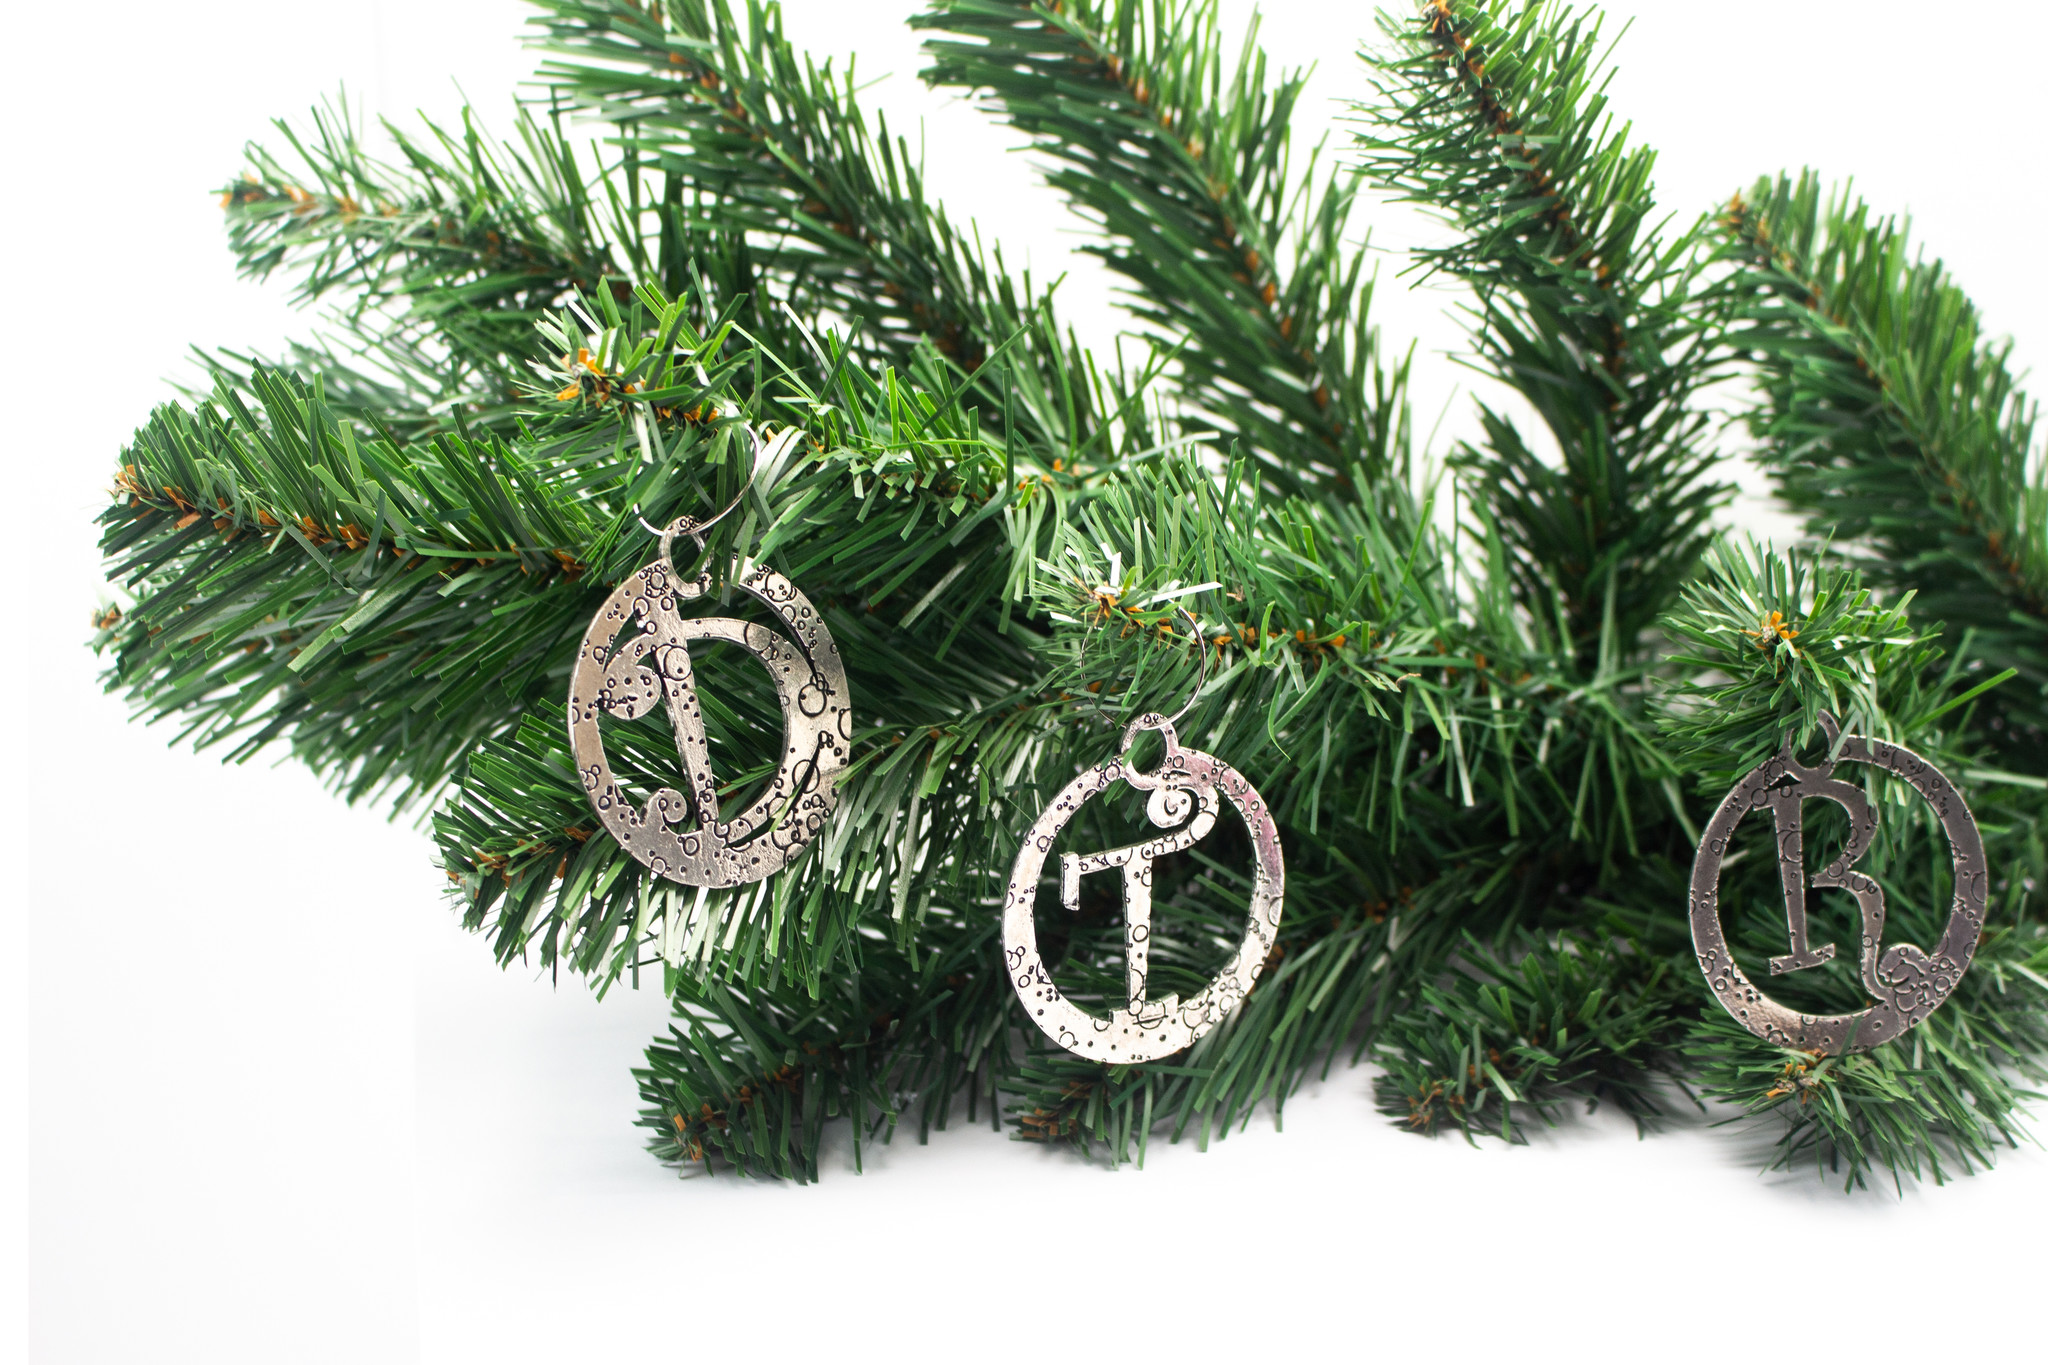 DTR Hanging Christmas ornament S